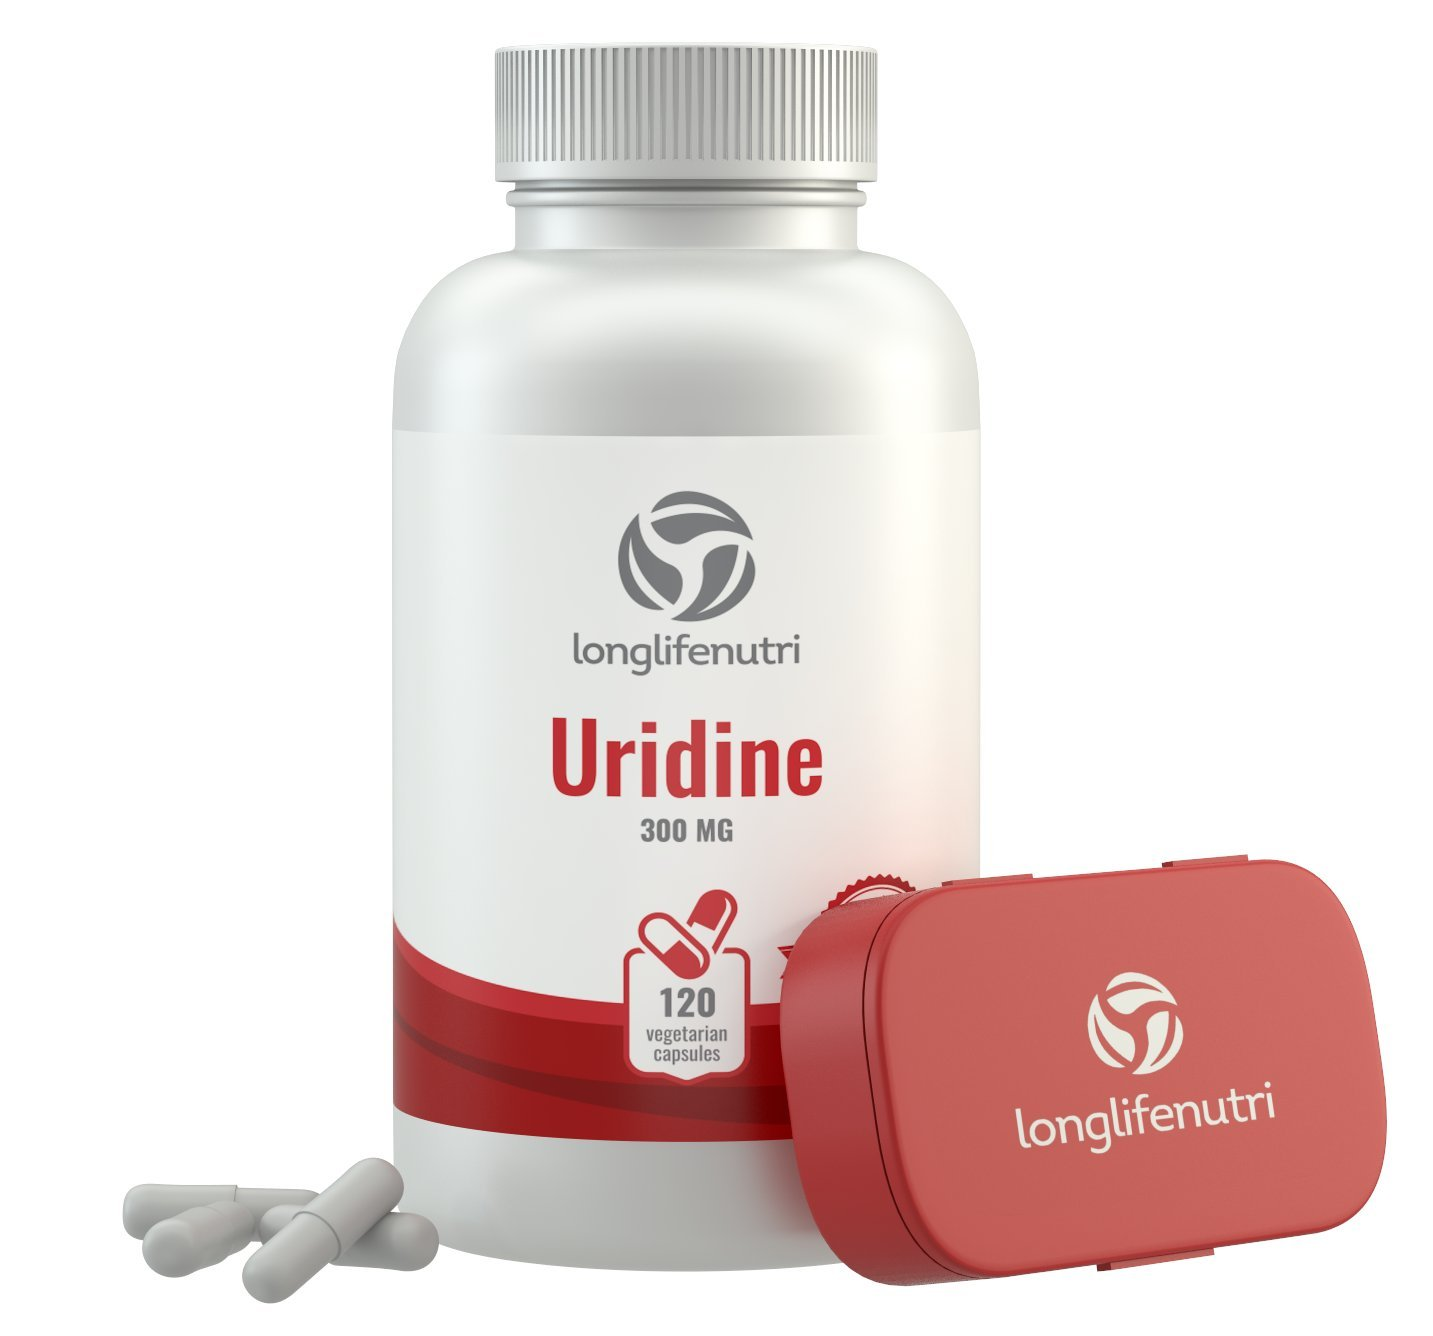 Uridine Monophosphate 300mg - 120 Vegetarian Capsules | Made In Usa | Choline Enhancer | Supports Cholinergic Brain & Memory Function | Helps Synapses Growth | 300 mg Pure Powder Pills Complex Formula by LongLifeNutri (Image #1)